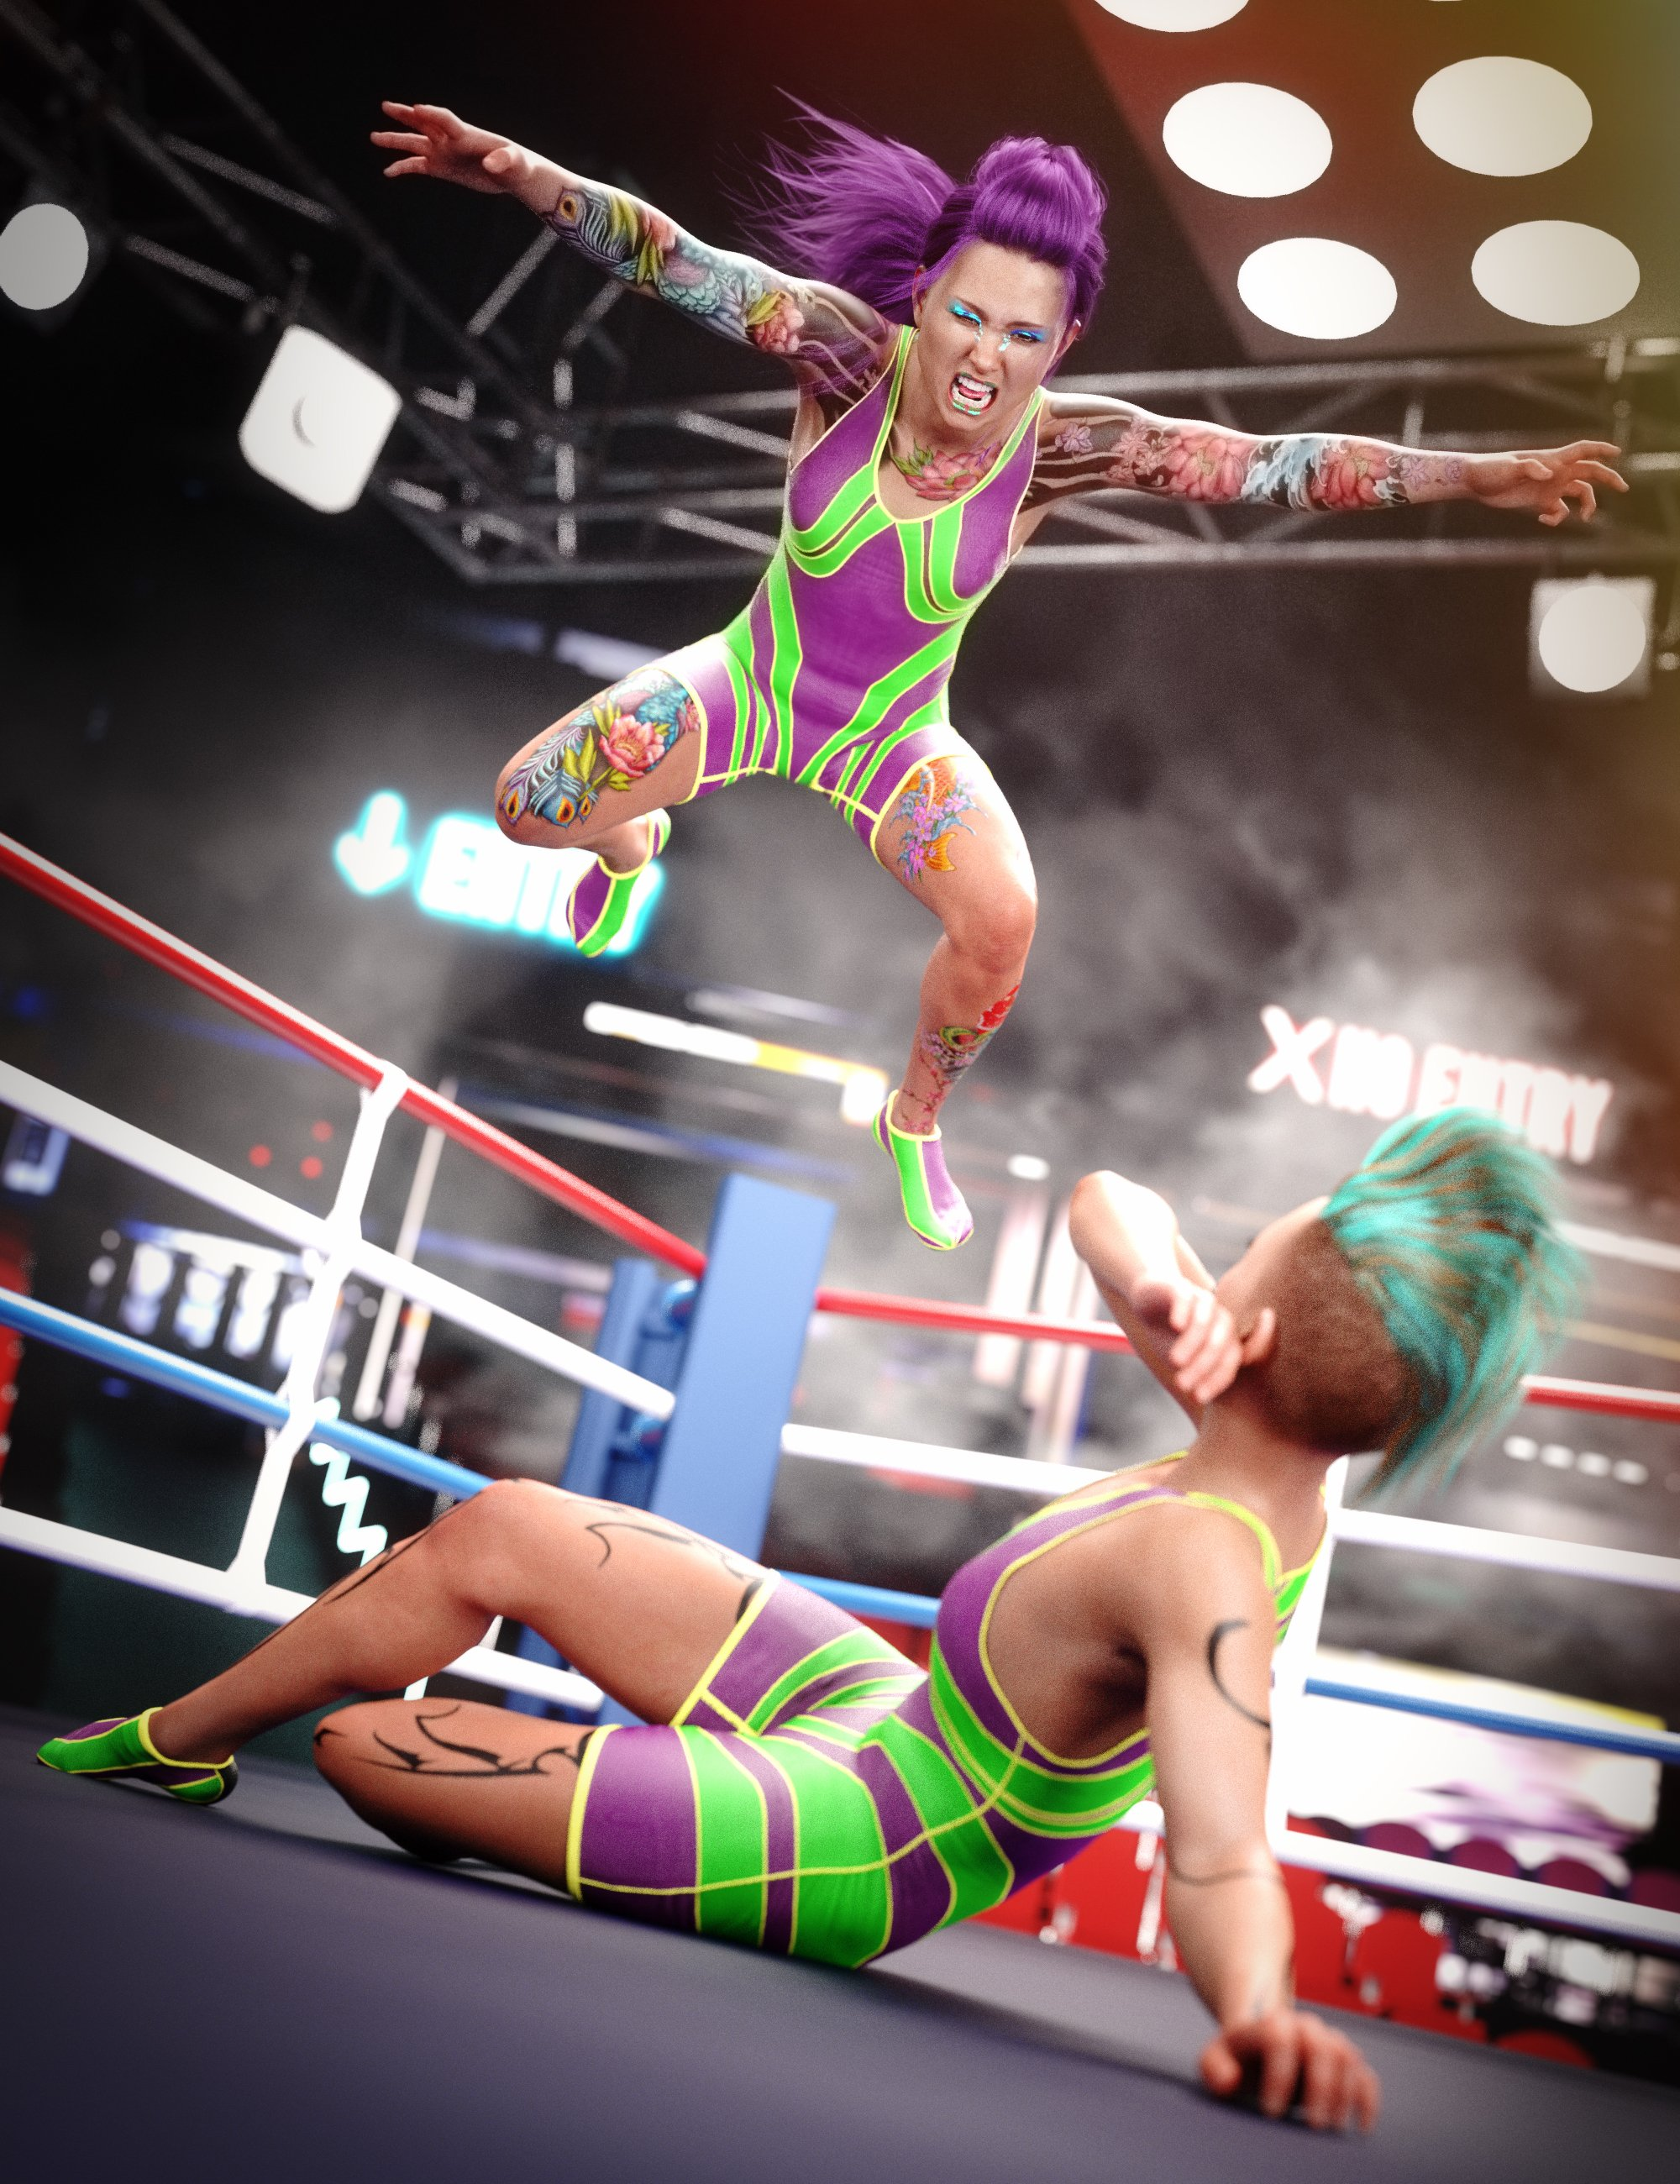 Amateur Wrestler Outfit for Genesis 8 Female by: Sixus1 Media, 3D Models by Daz 3D